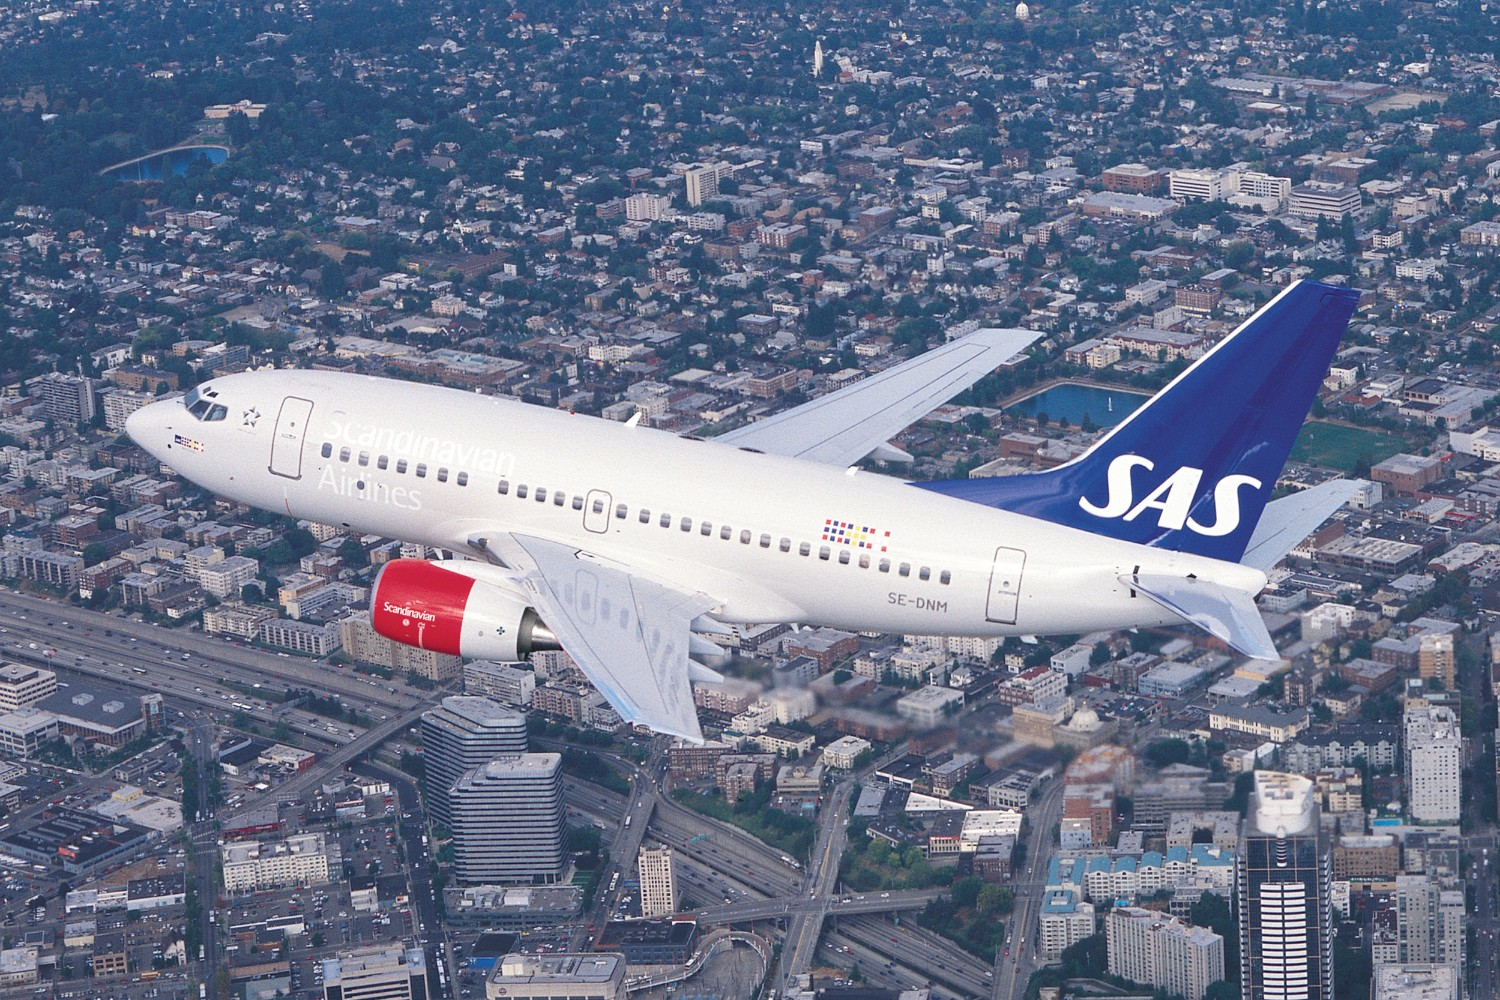 An SAS airplane in mid-air over a city.